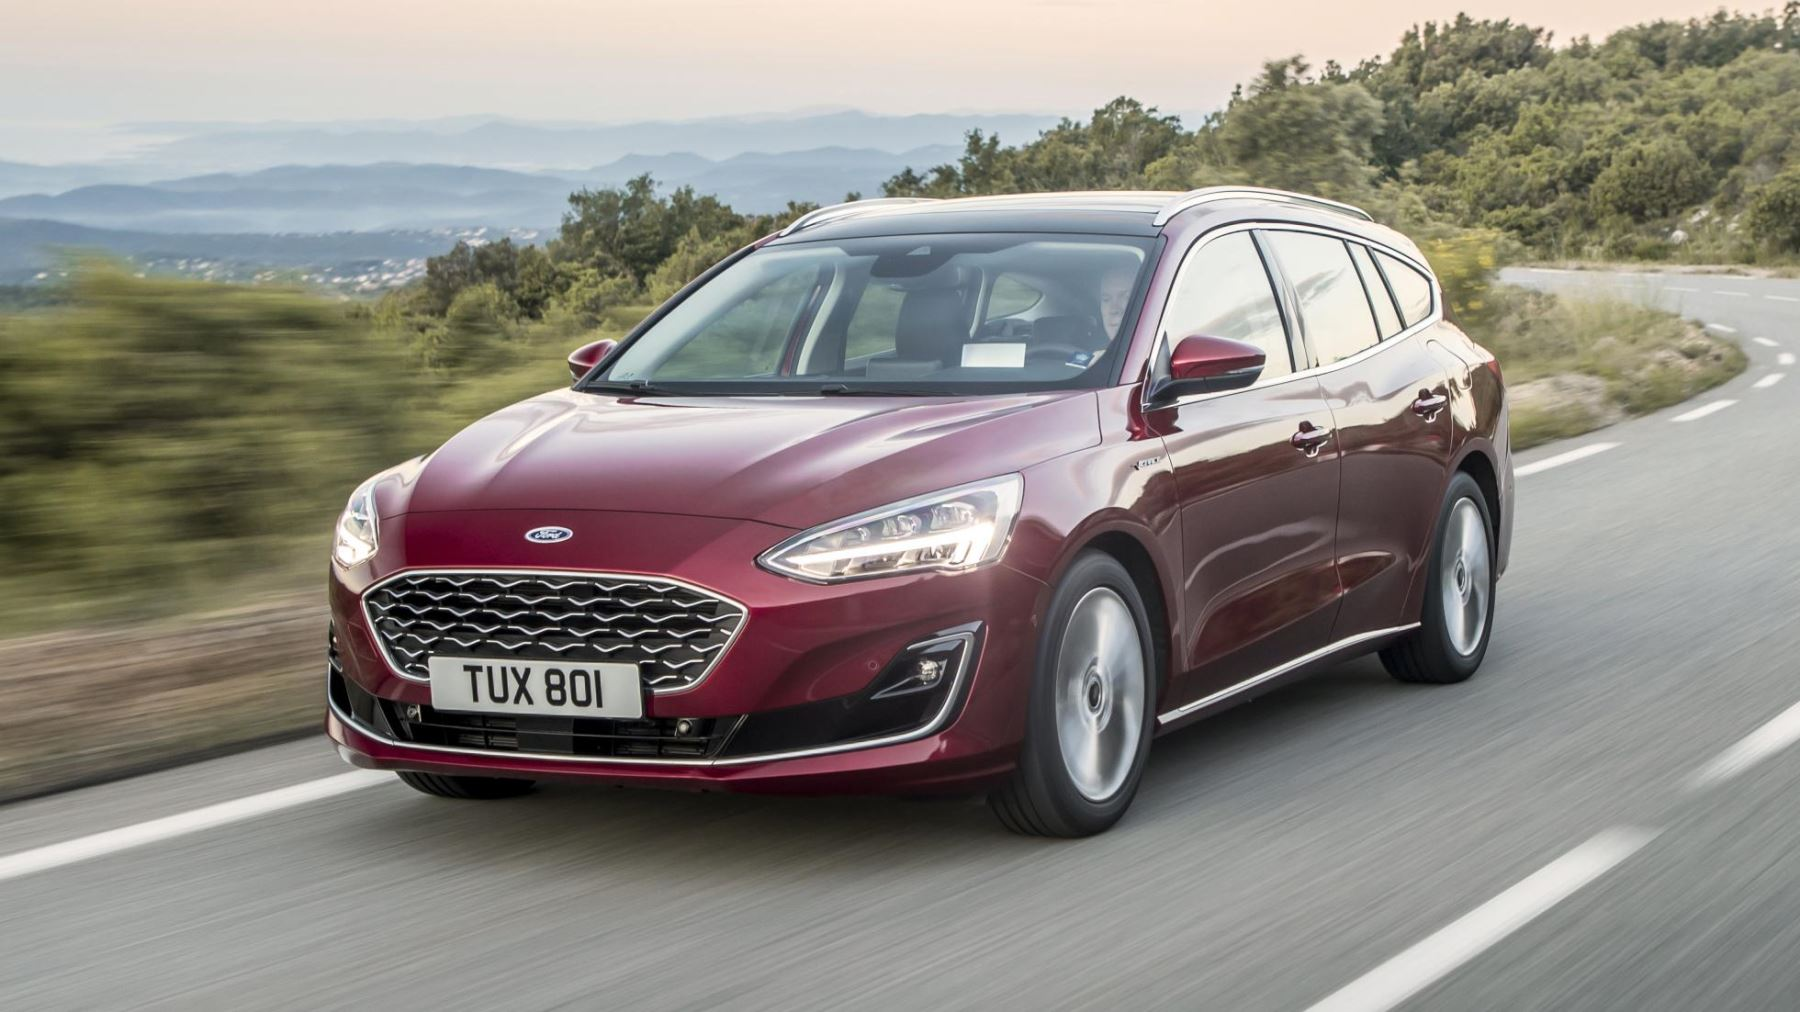 Ford Focus Titanium X 2.0 Diesel 150ps Diesel Automatic 5 door Estate (2019)